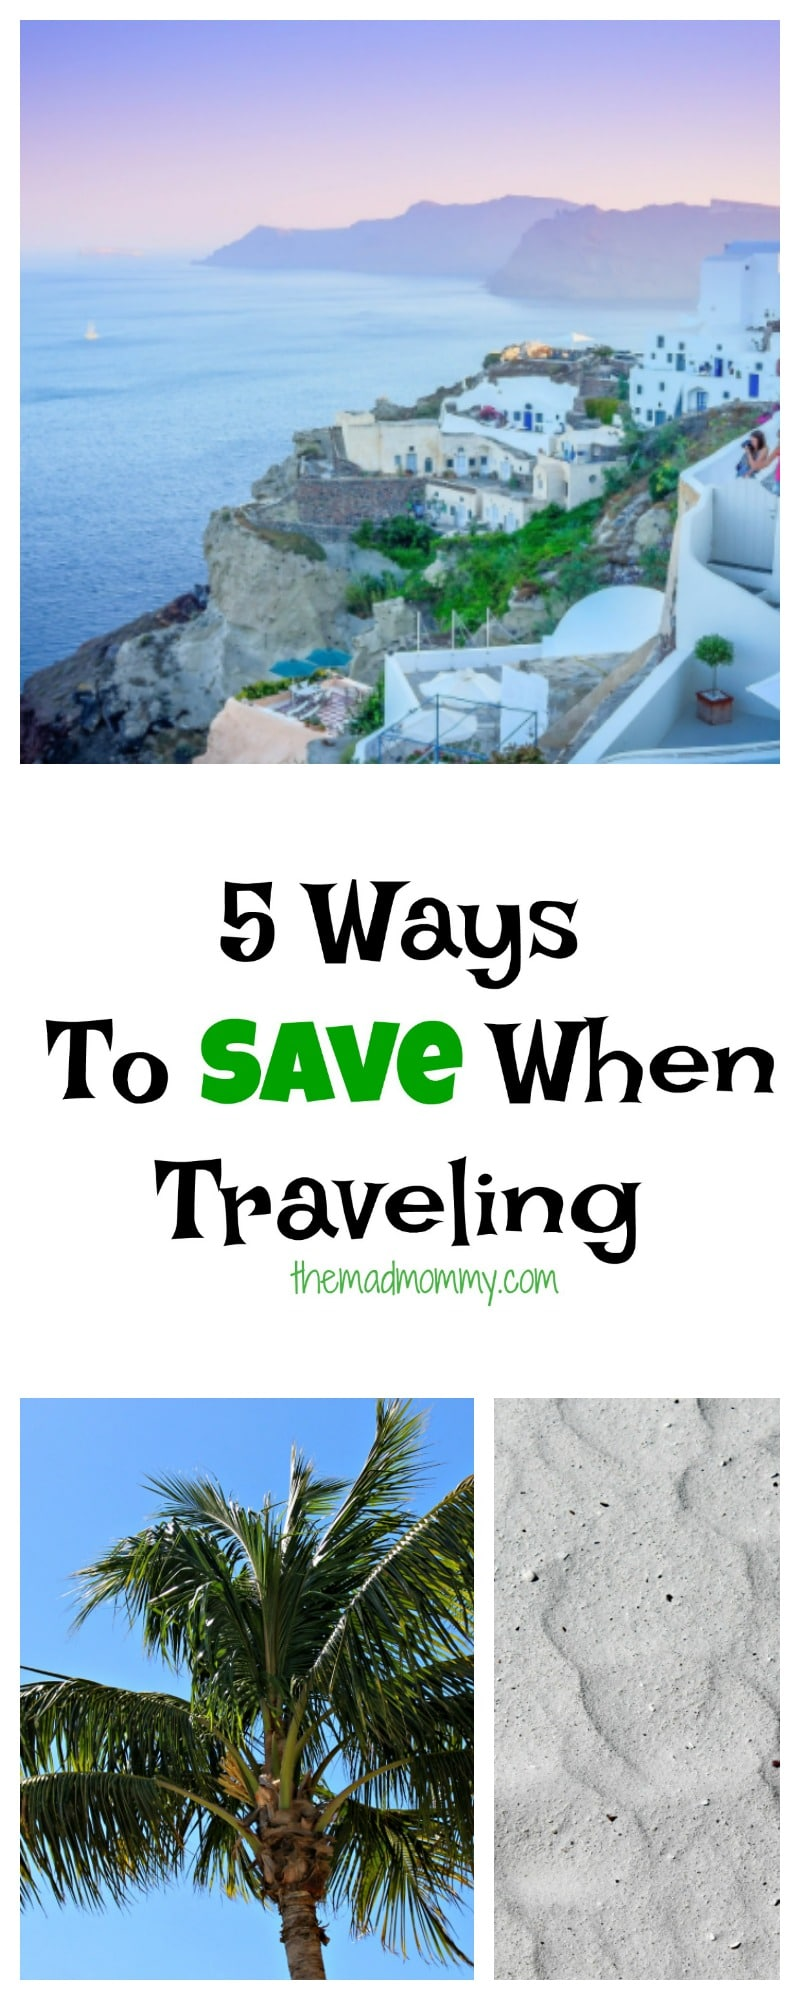 You can pinch pennies at every corner and save a ton, or you can take the other route and splurge and spend thousands. Here are just a few ways to save when traveling: